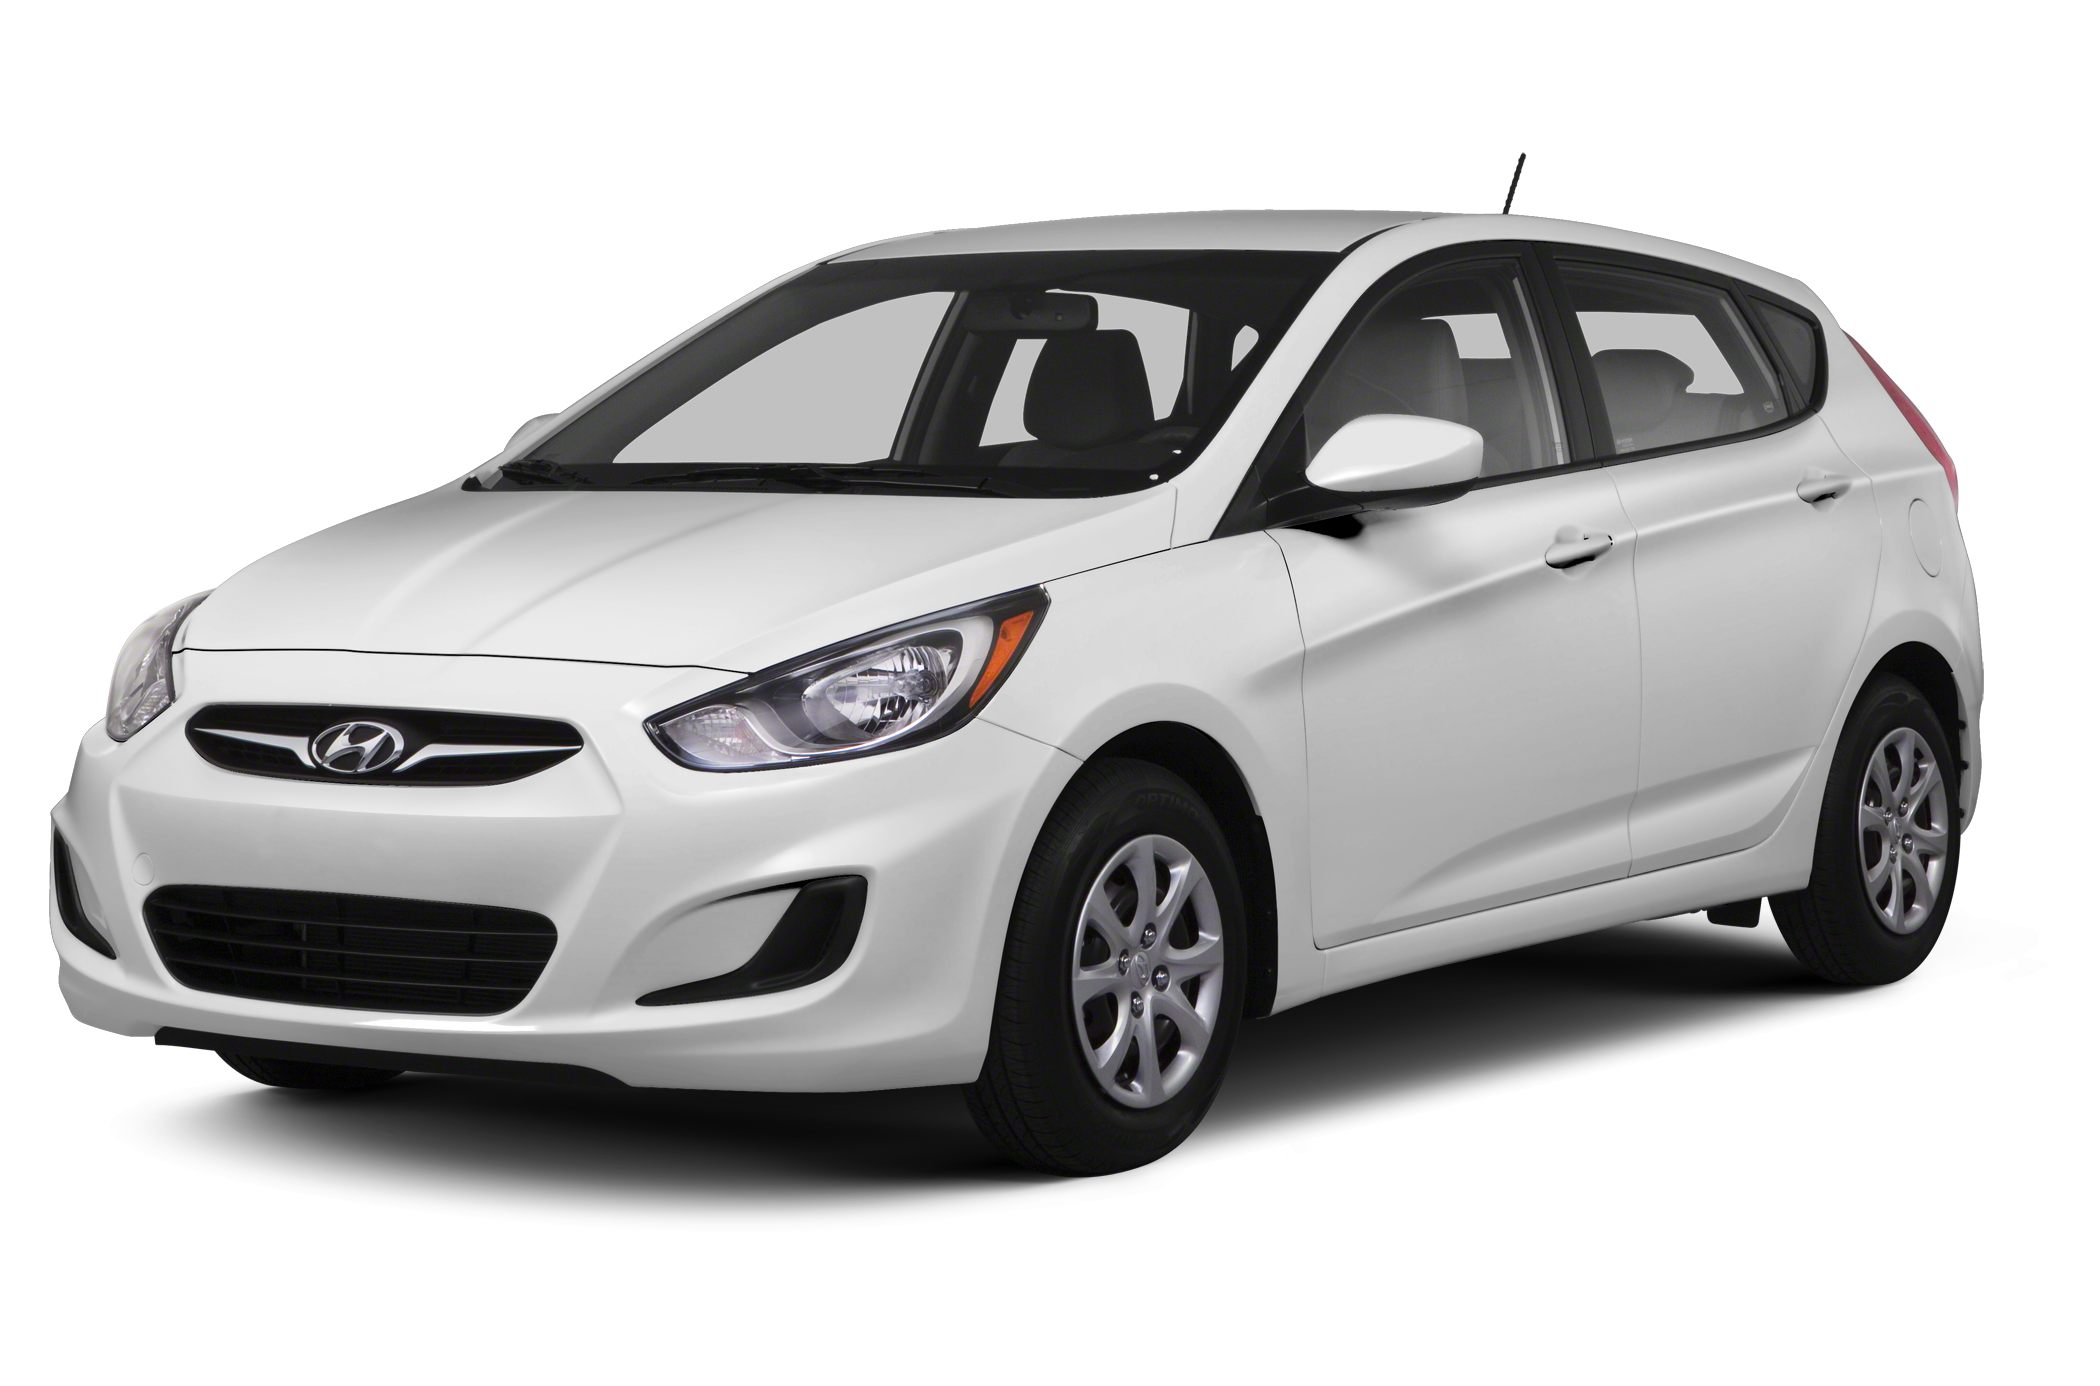 2013 Hyundai Accent SE Hatchback for sale in Toms River for $13,937 with 30,340 miles.